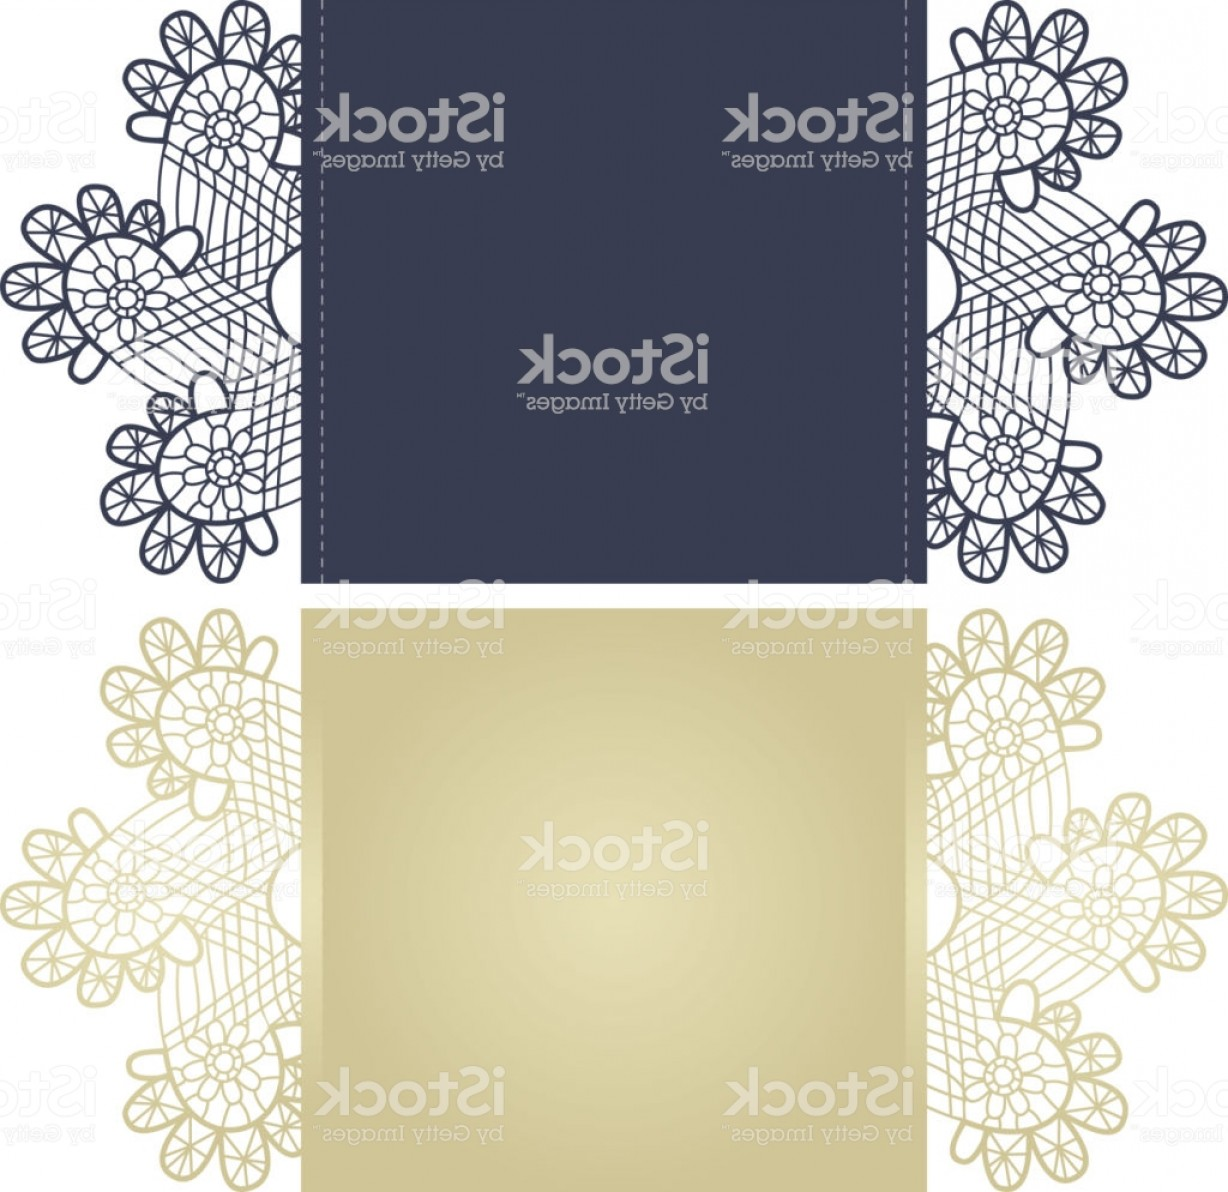 Champagne Vinyl Plotter Vector Art: Laser Cutting Vector Card Laser Cut Wedding Invitation Template Cut Paper Card With Gm